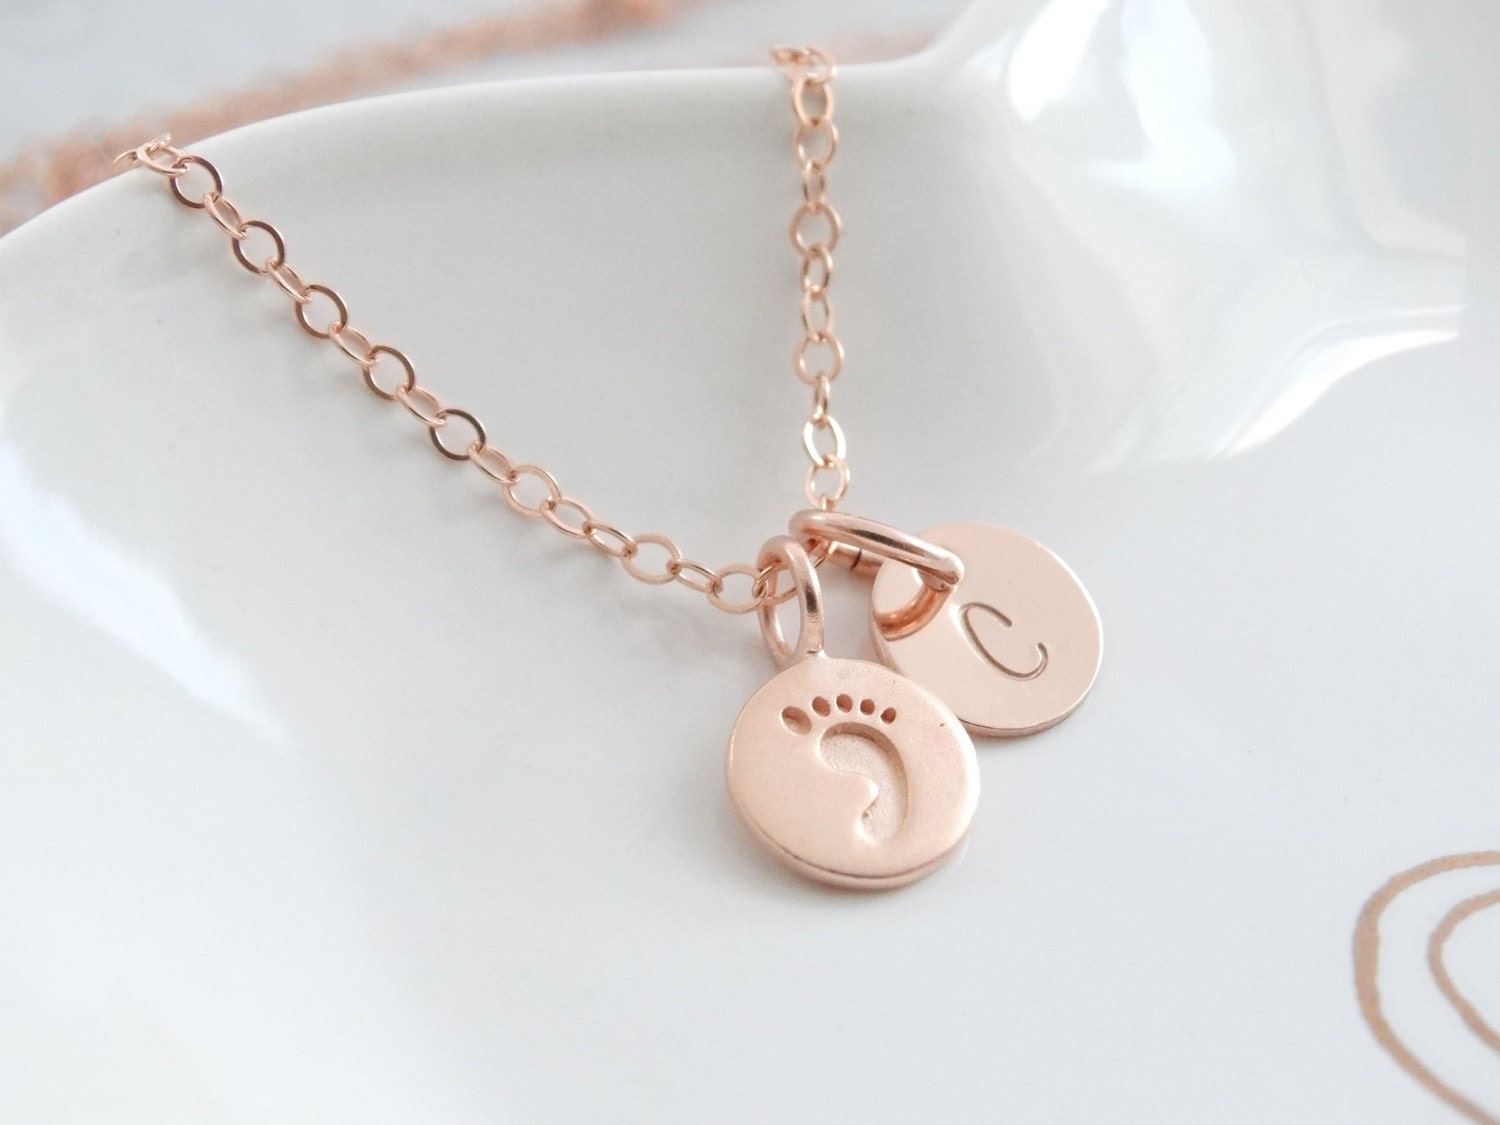 New baby gift new mom gift necklace baby footprint necklace new baby gift new mom gift necklace baby footprint necklace personalized baby gift rose gold necklace mothers necklace foot print necklace negle Gallery